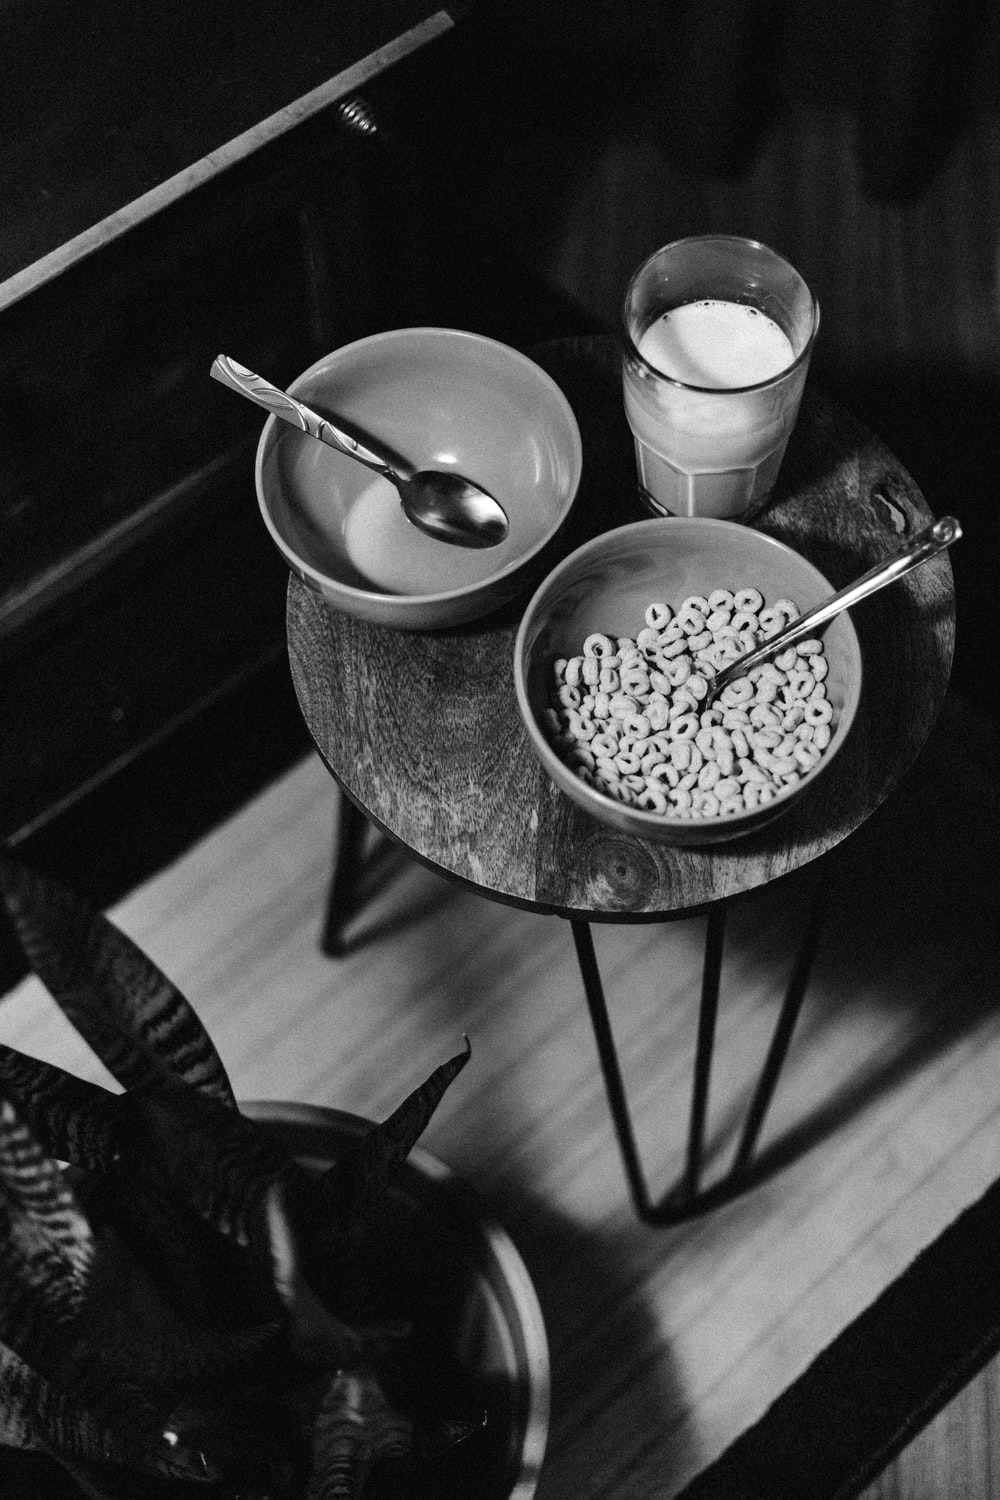 grayscale photo of bowl of cereal beside glass of milk